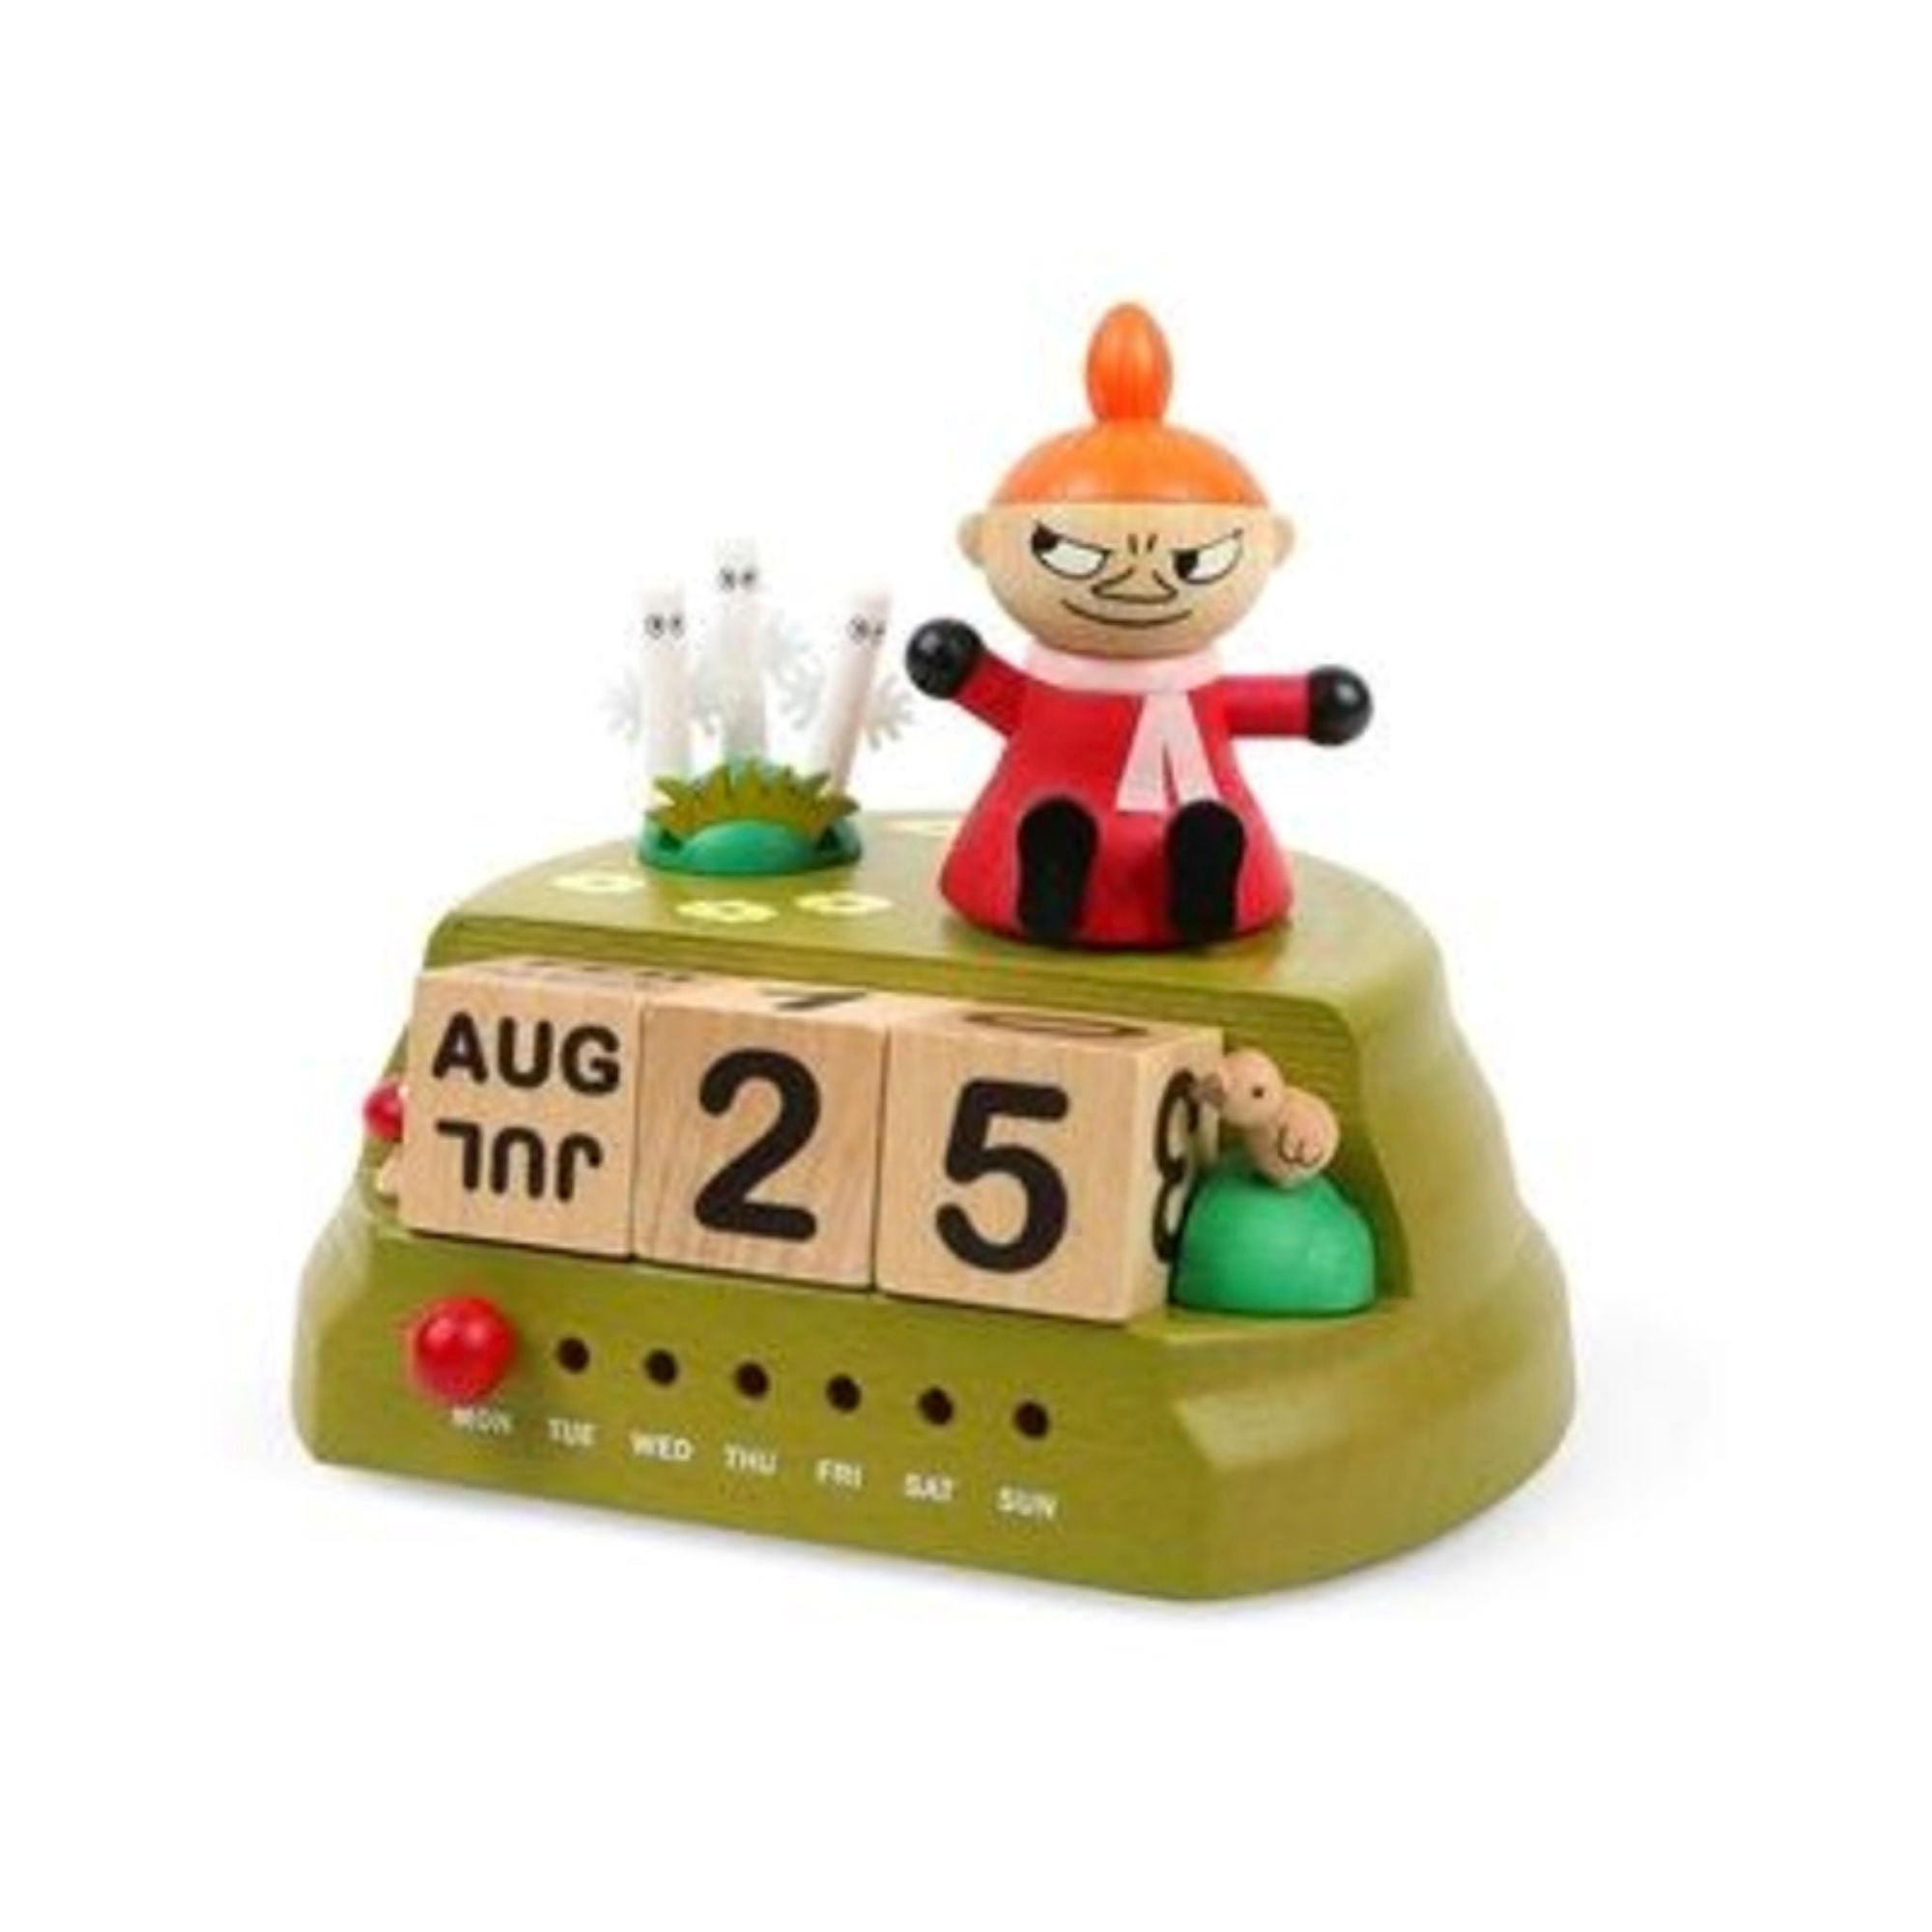 Wooderful Life wooden calendar music box, little my